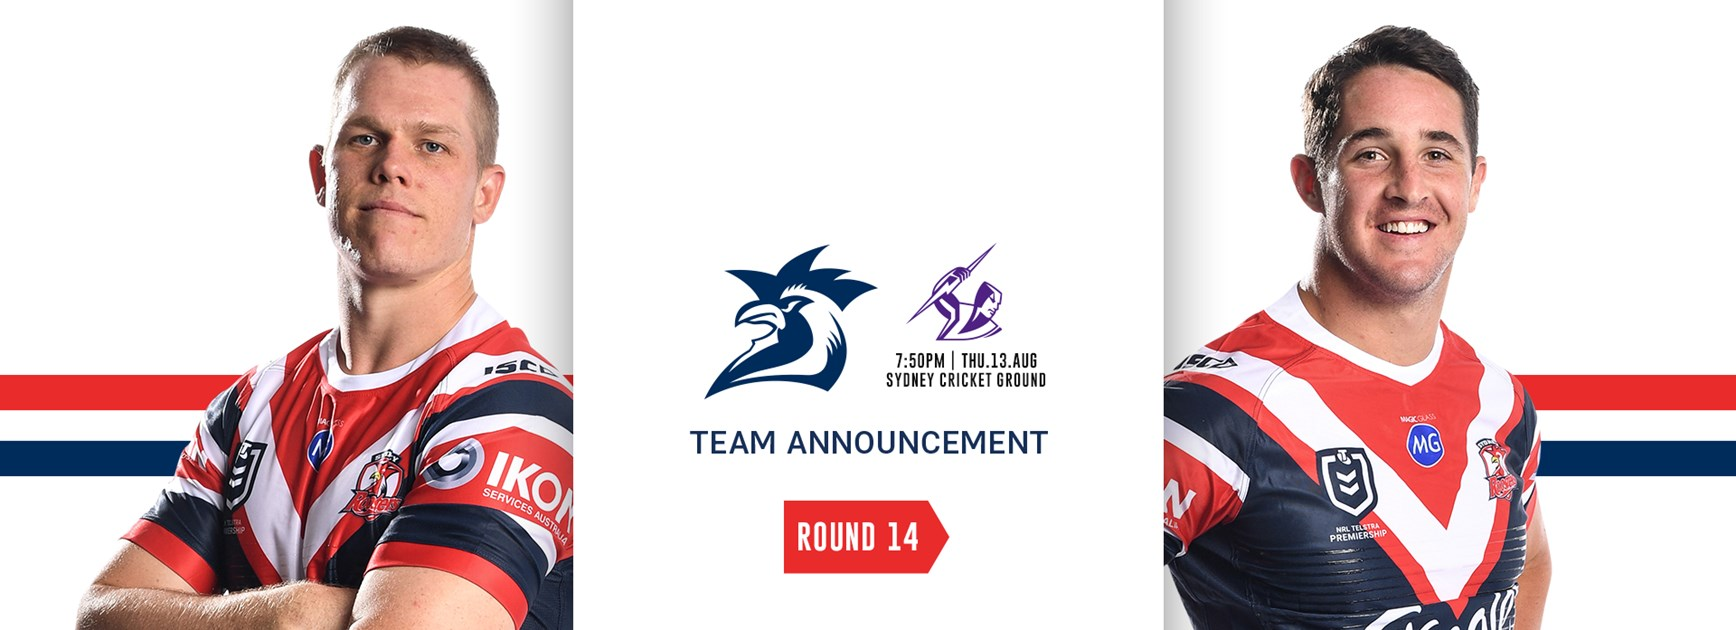 Team Announcement | Round 14